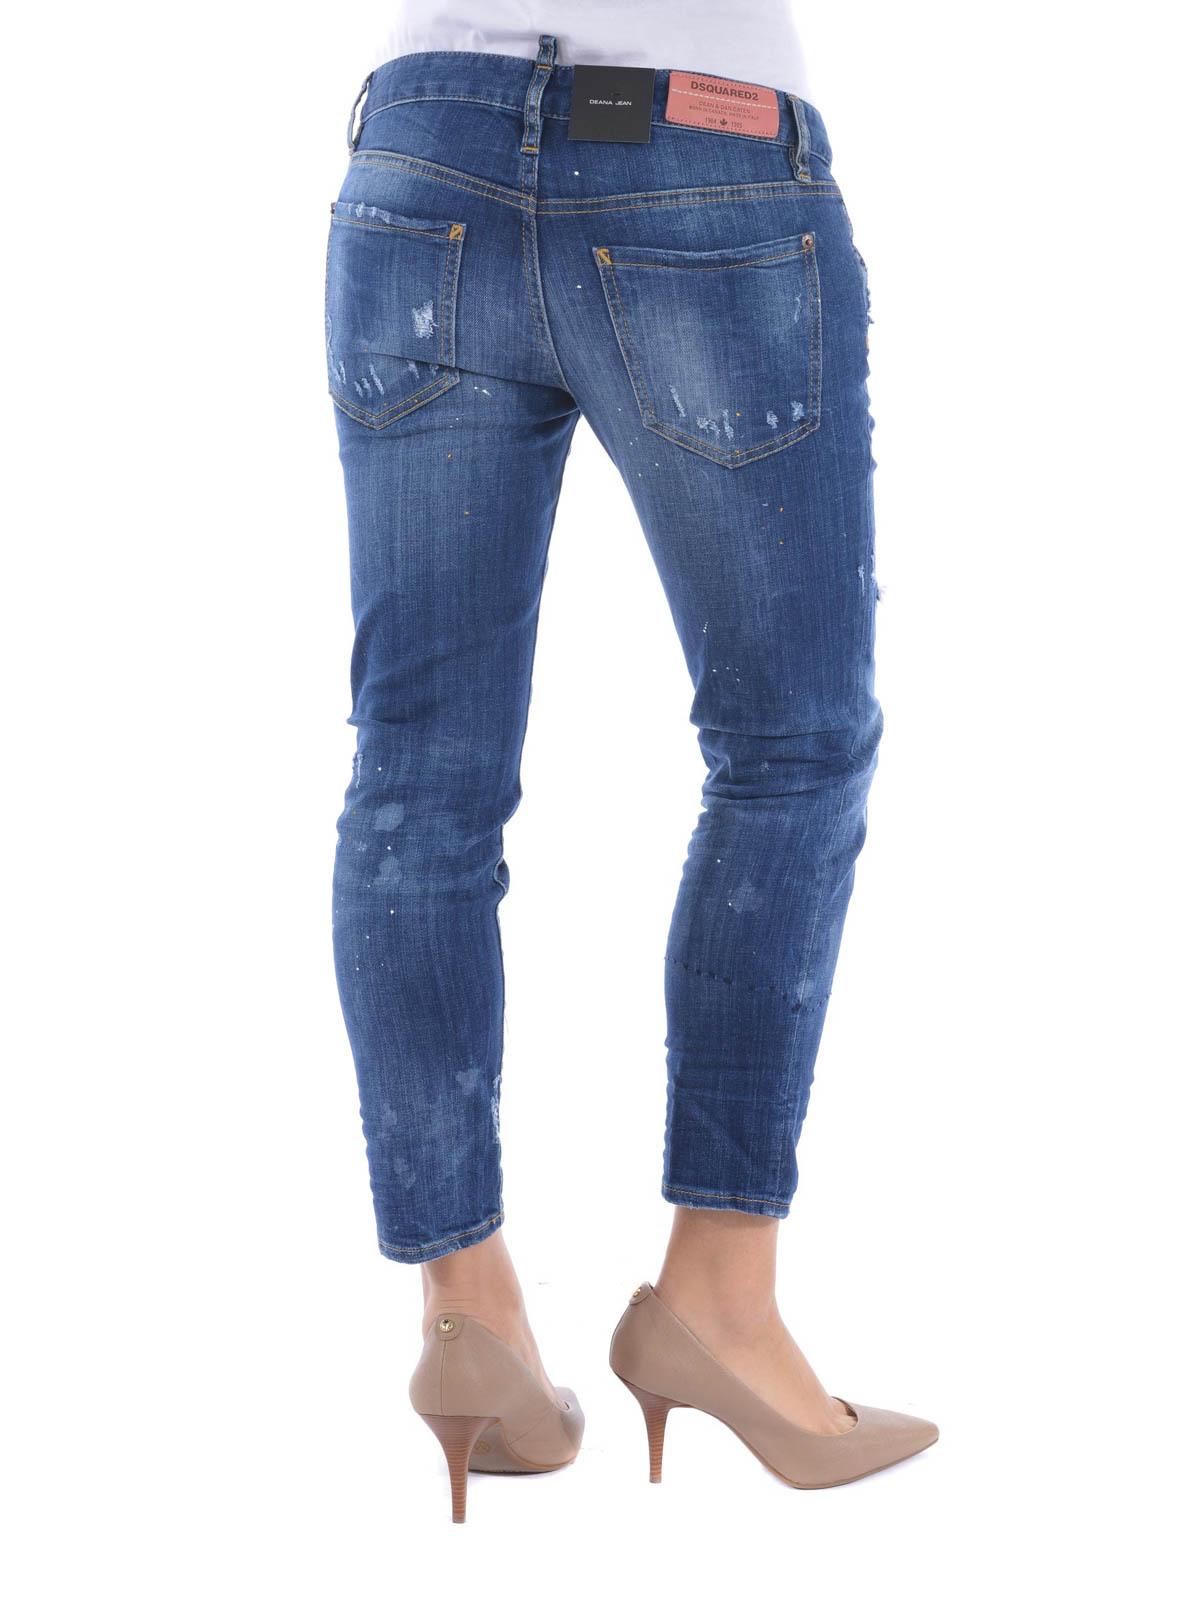 Shopping for Cheap Ripped Jeans at kozonhee Store and more from jeans with high waist,jeans with,skinny ripped jeans,stretch jeans women,women jeans,jeans woman on humorrmundiall.ga,the Leading Trading Marketplace from China.